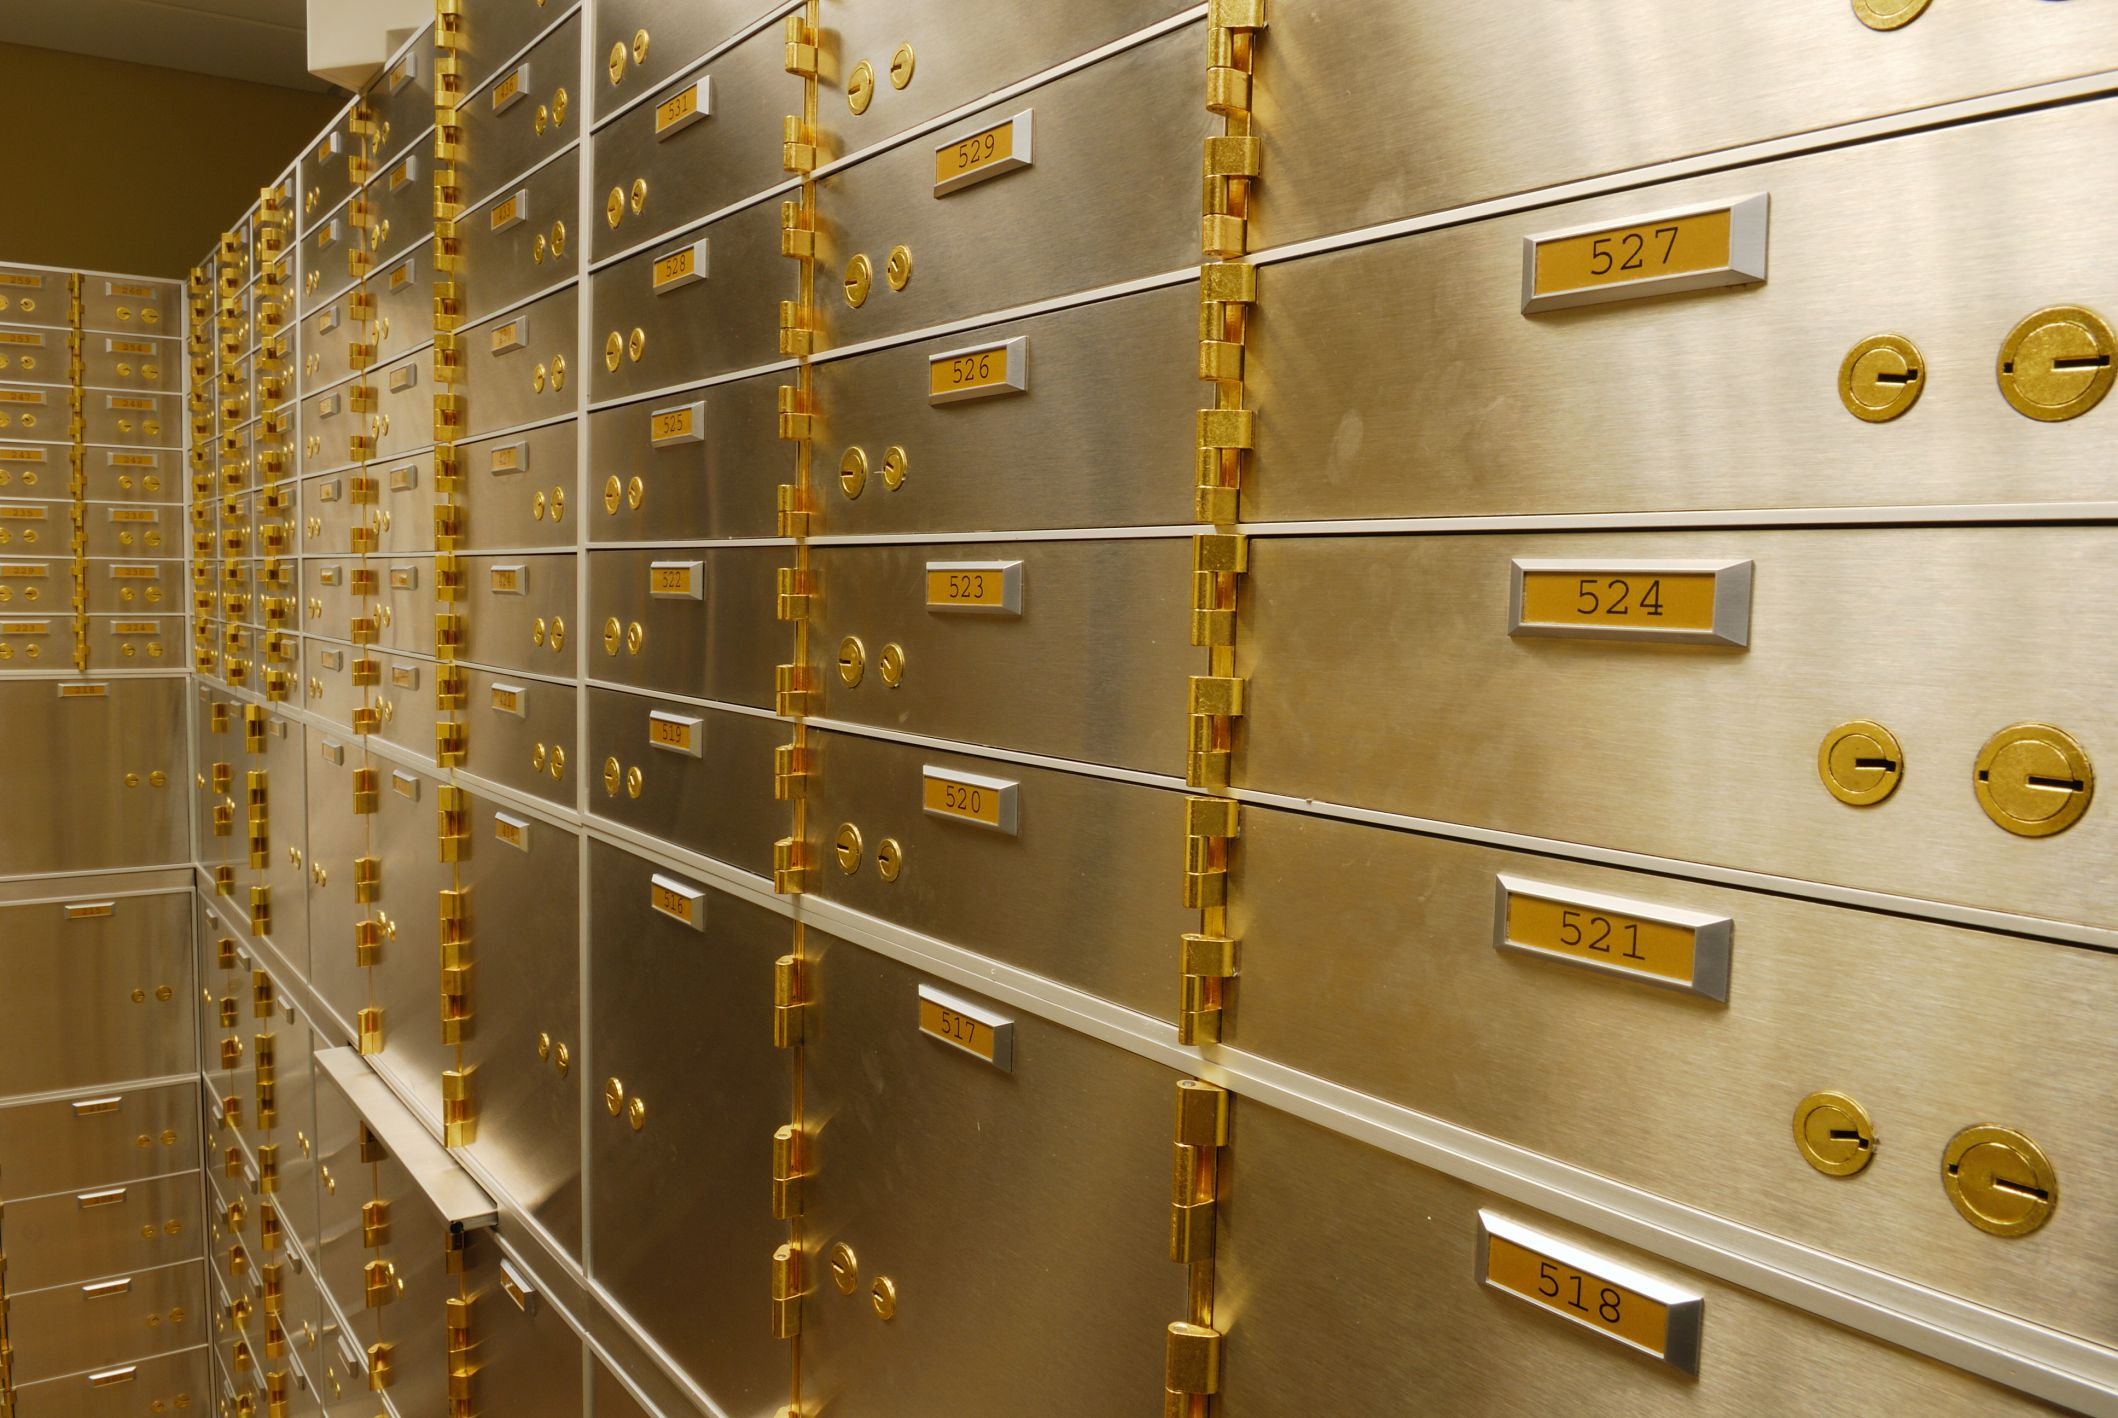 Using Safety Deposit Boxes to Store Important Papers